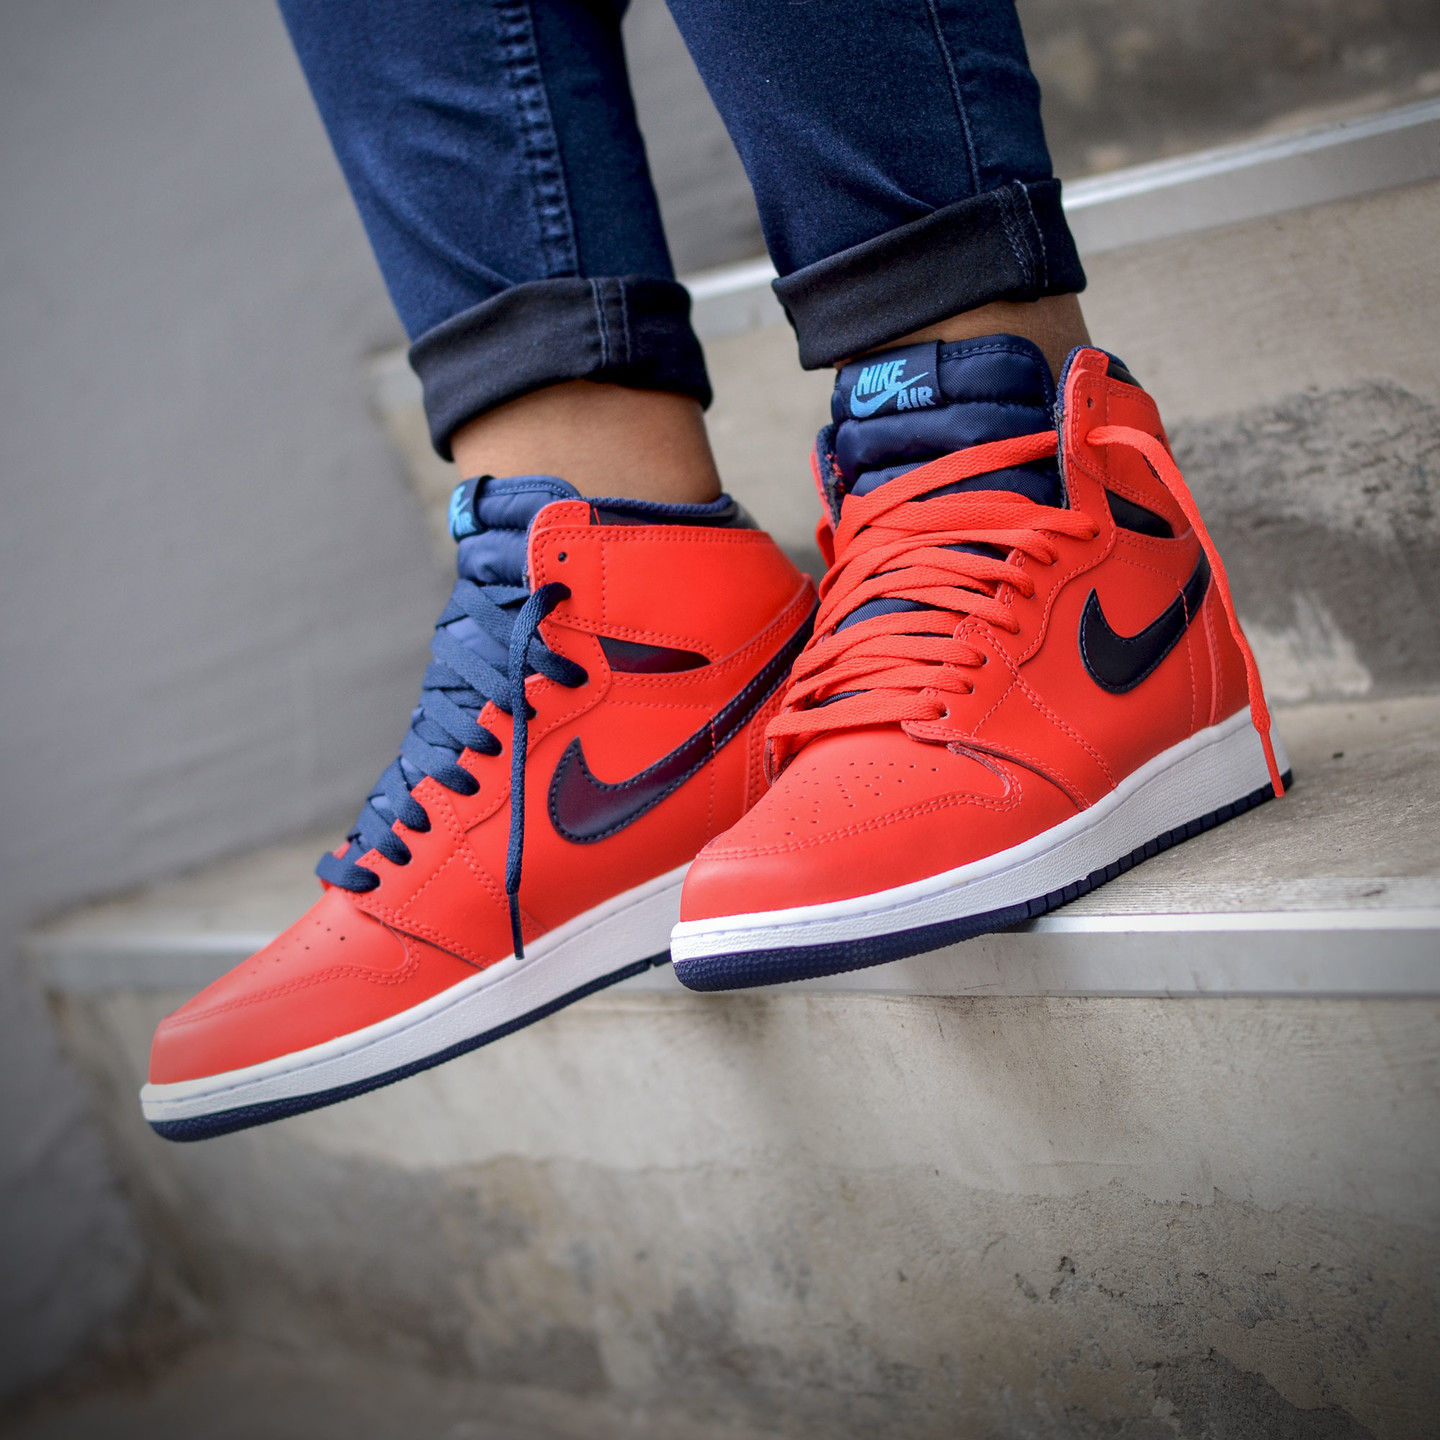 Nike Air Jordan 1 Retro High OG 'Letterman' Light Crimson / University Blue 555088-606-47.5